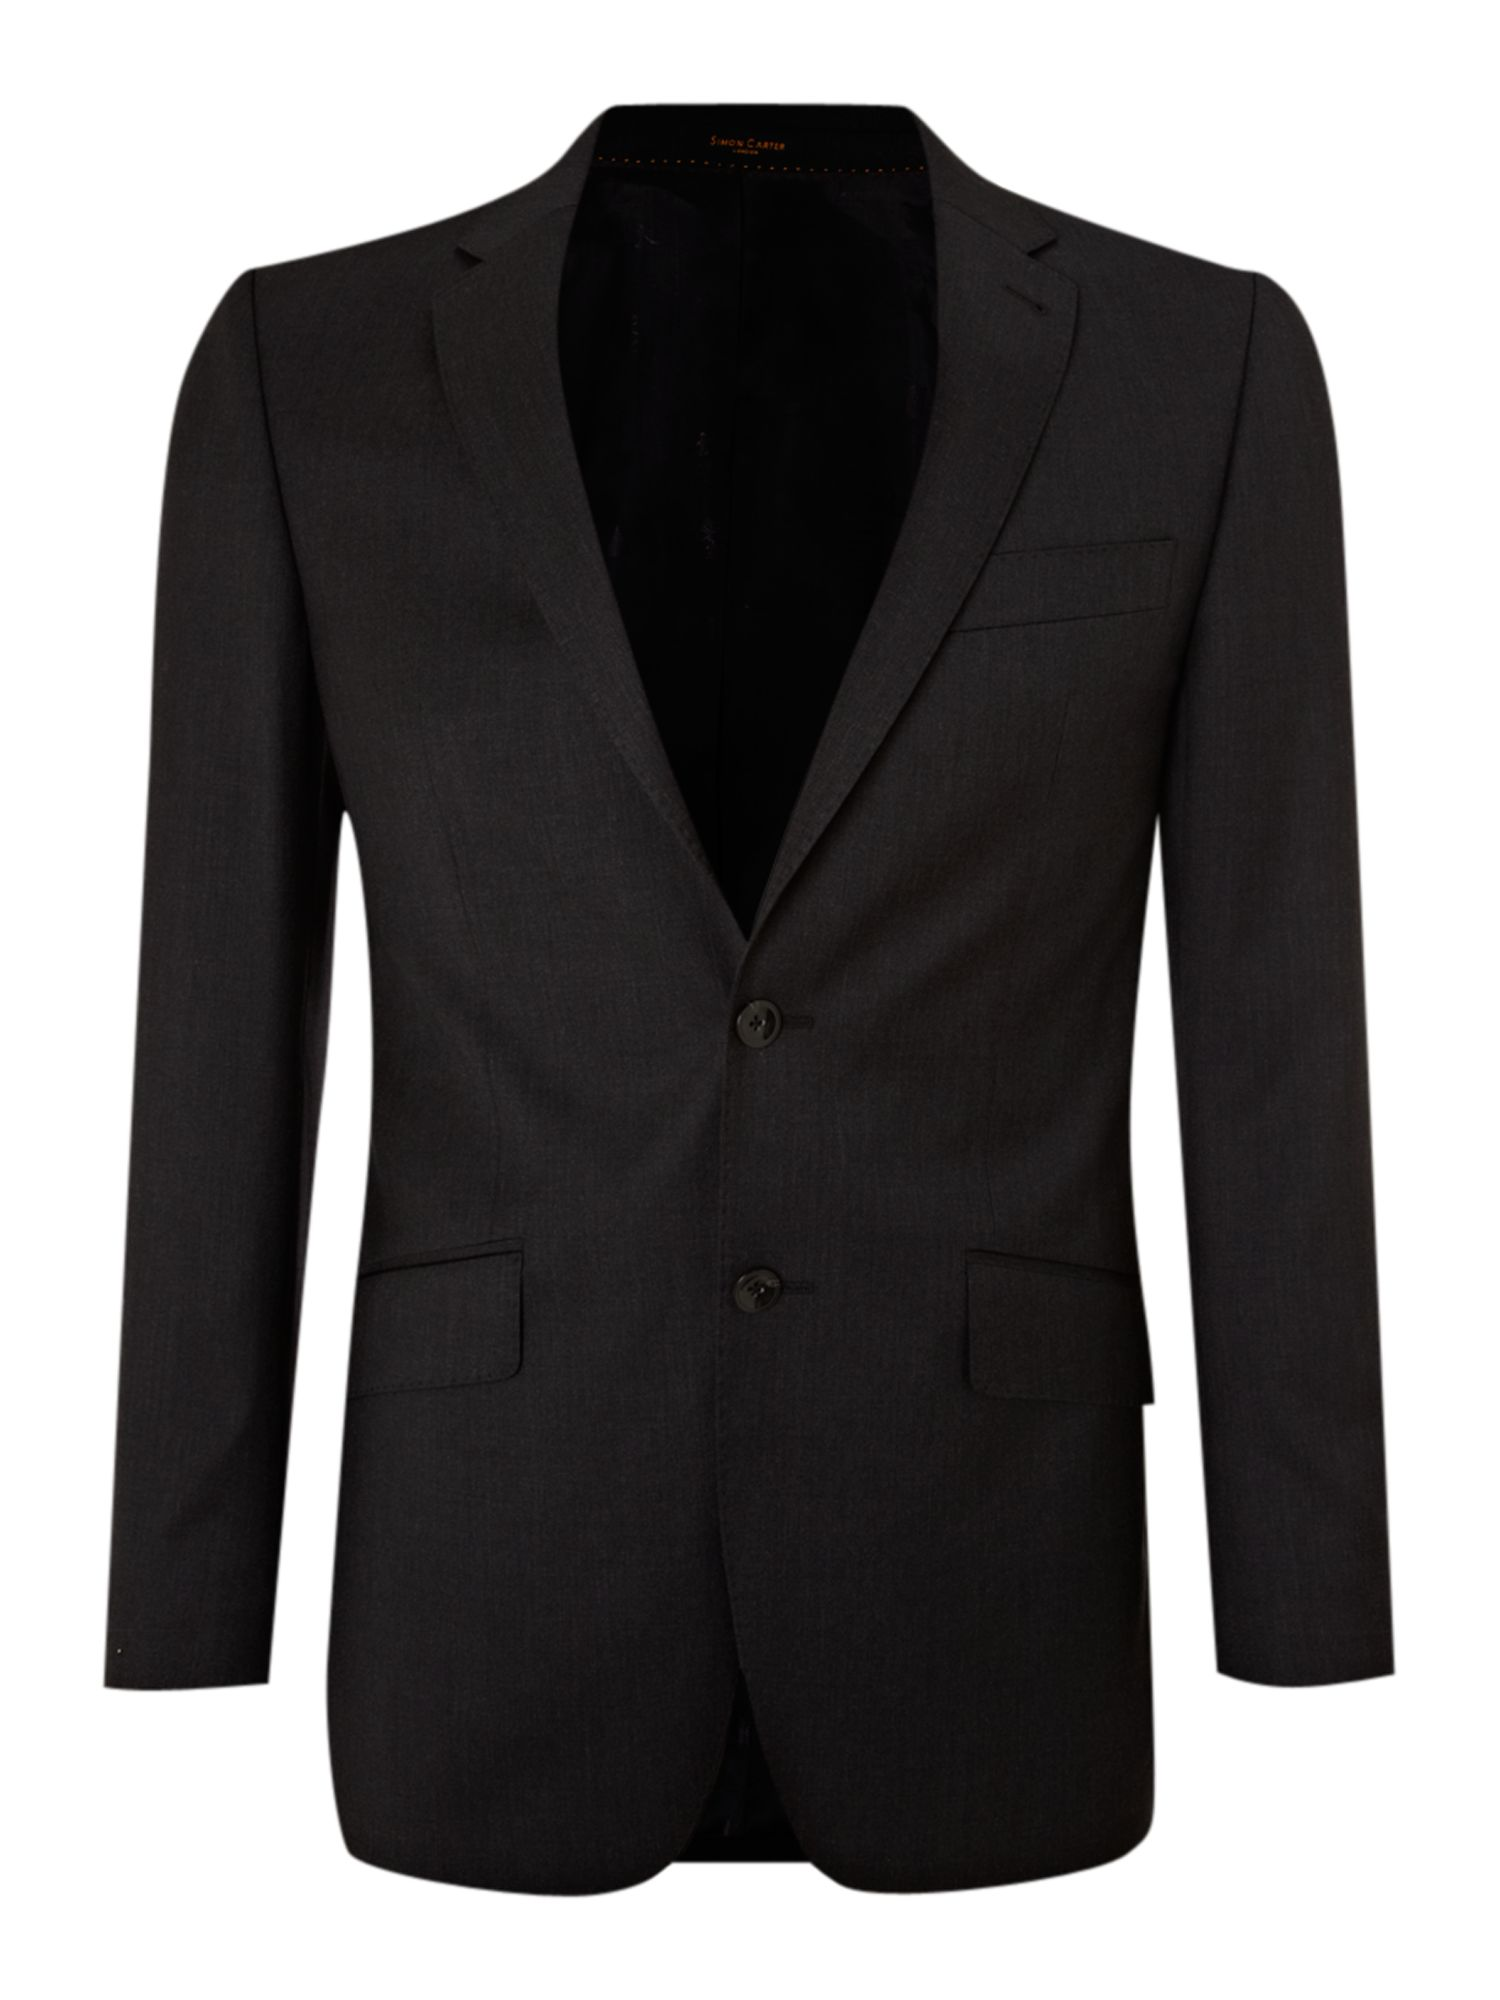 Men's Simon Carter Explorer regular fit suit jacket, Charcoal